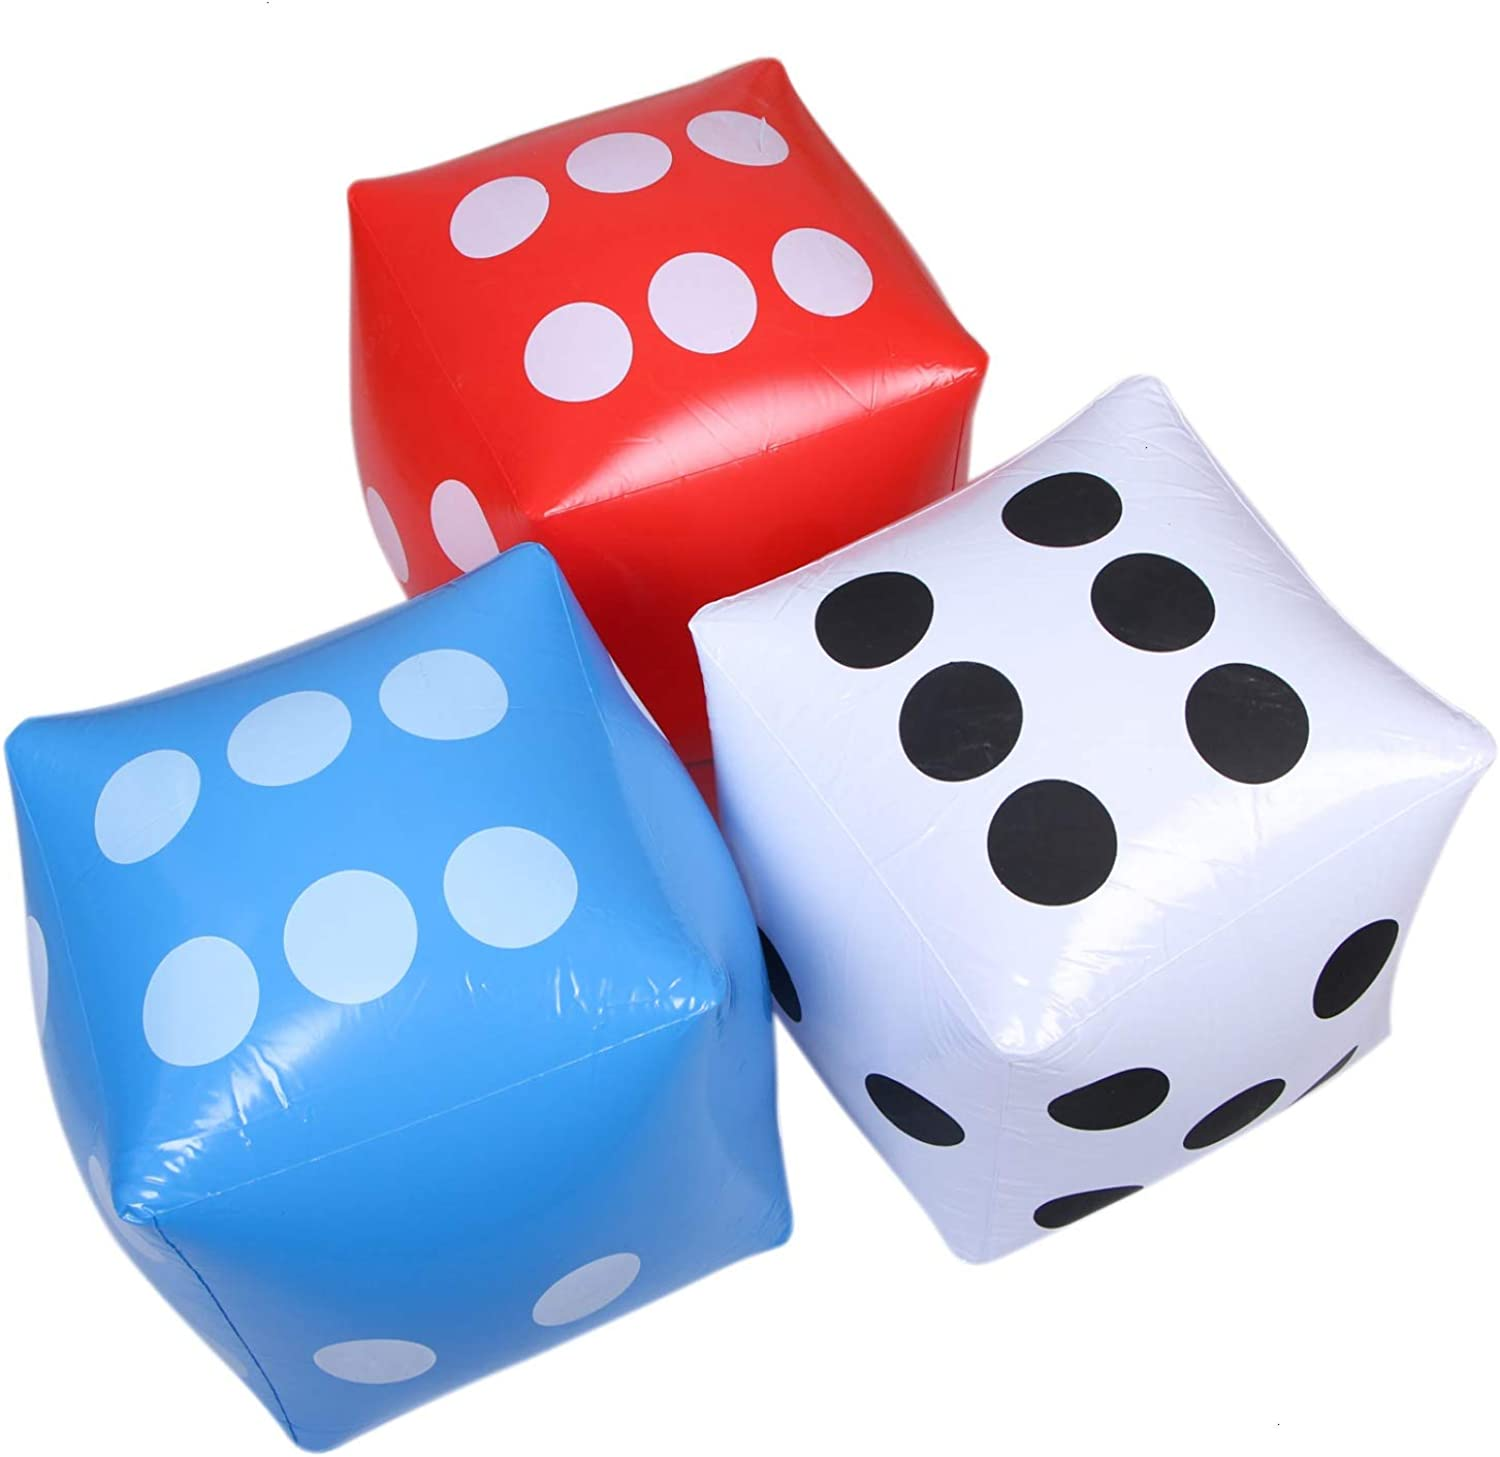 JETEHO Pack of 3 Inflatable Dice, Numeral Dice for Picnic Free Floor Games Lawn Games Outdoor Fun, 12 Inch